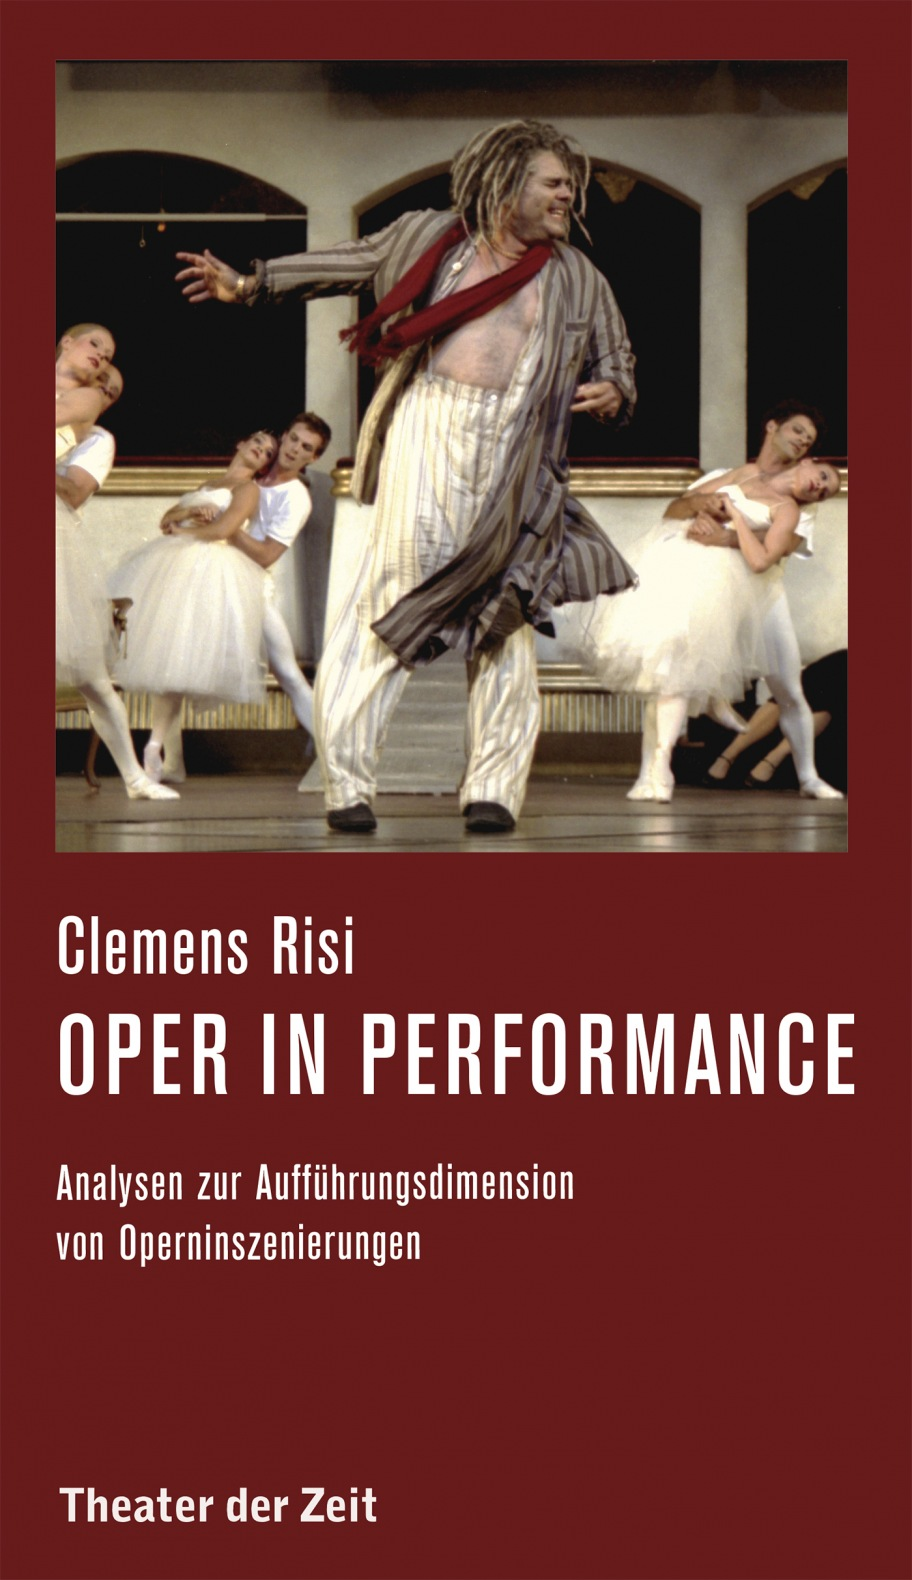 Clemens Risi: Oper in performance